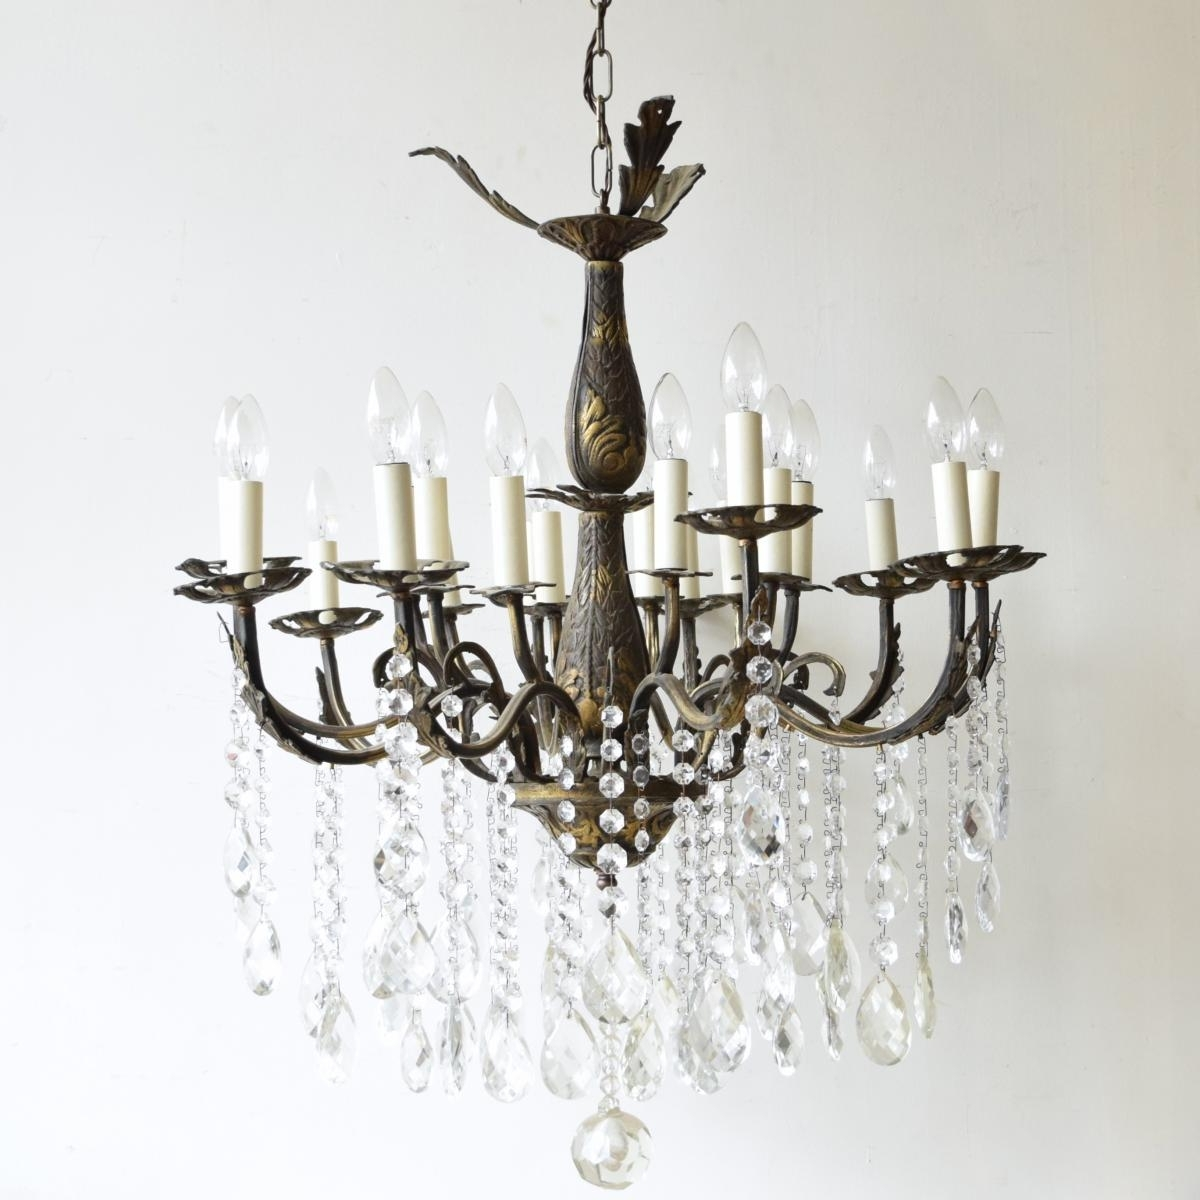 Old Brass Chandelier Pertaining To Latest Large Vintage French 16 Light Brass Chandelier For Sale At Pamono (View 14 of 20)